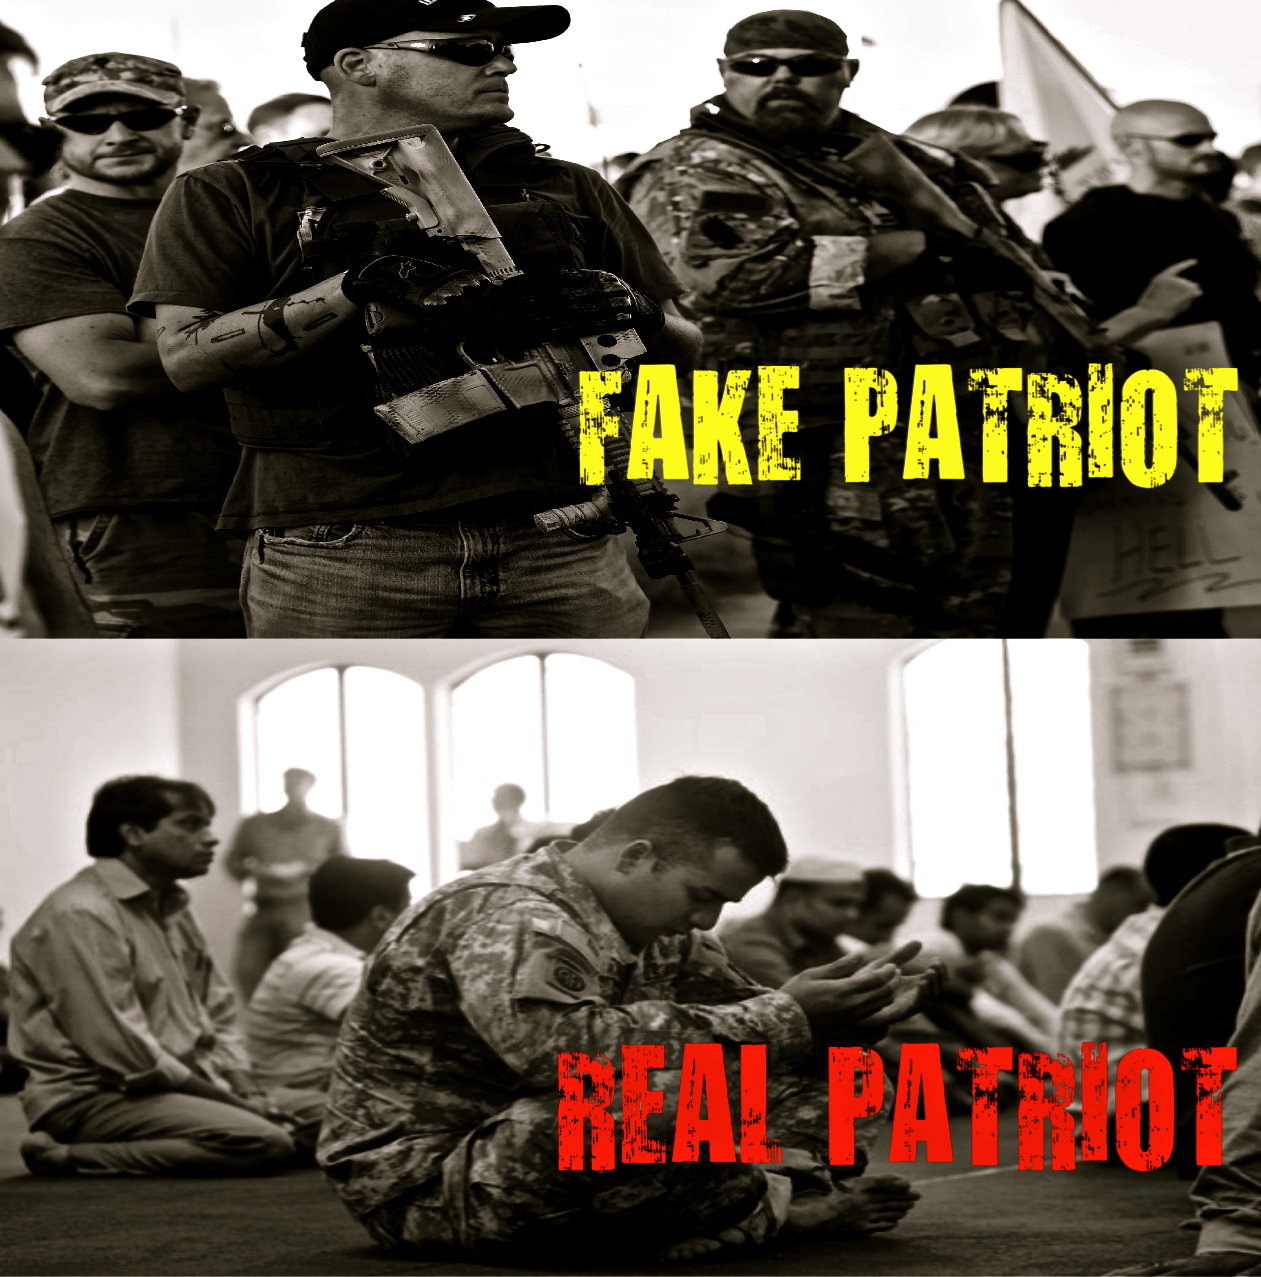 The latest Tweets from US Patriot Tactical (@USPatriotTac). Boots, uniforms and gear for active duty military and law enforcement personnel. Shop online or at any of our nationwide stores!. Columbia, SC.